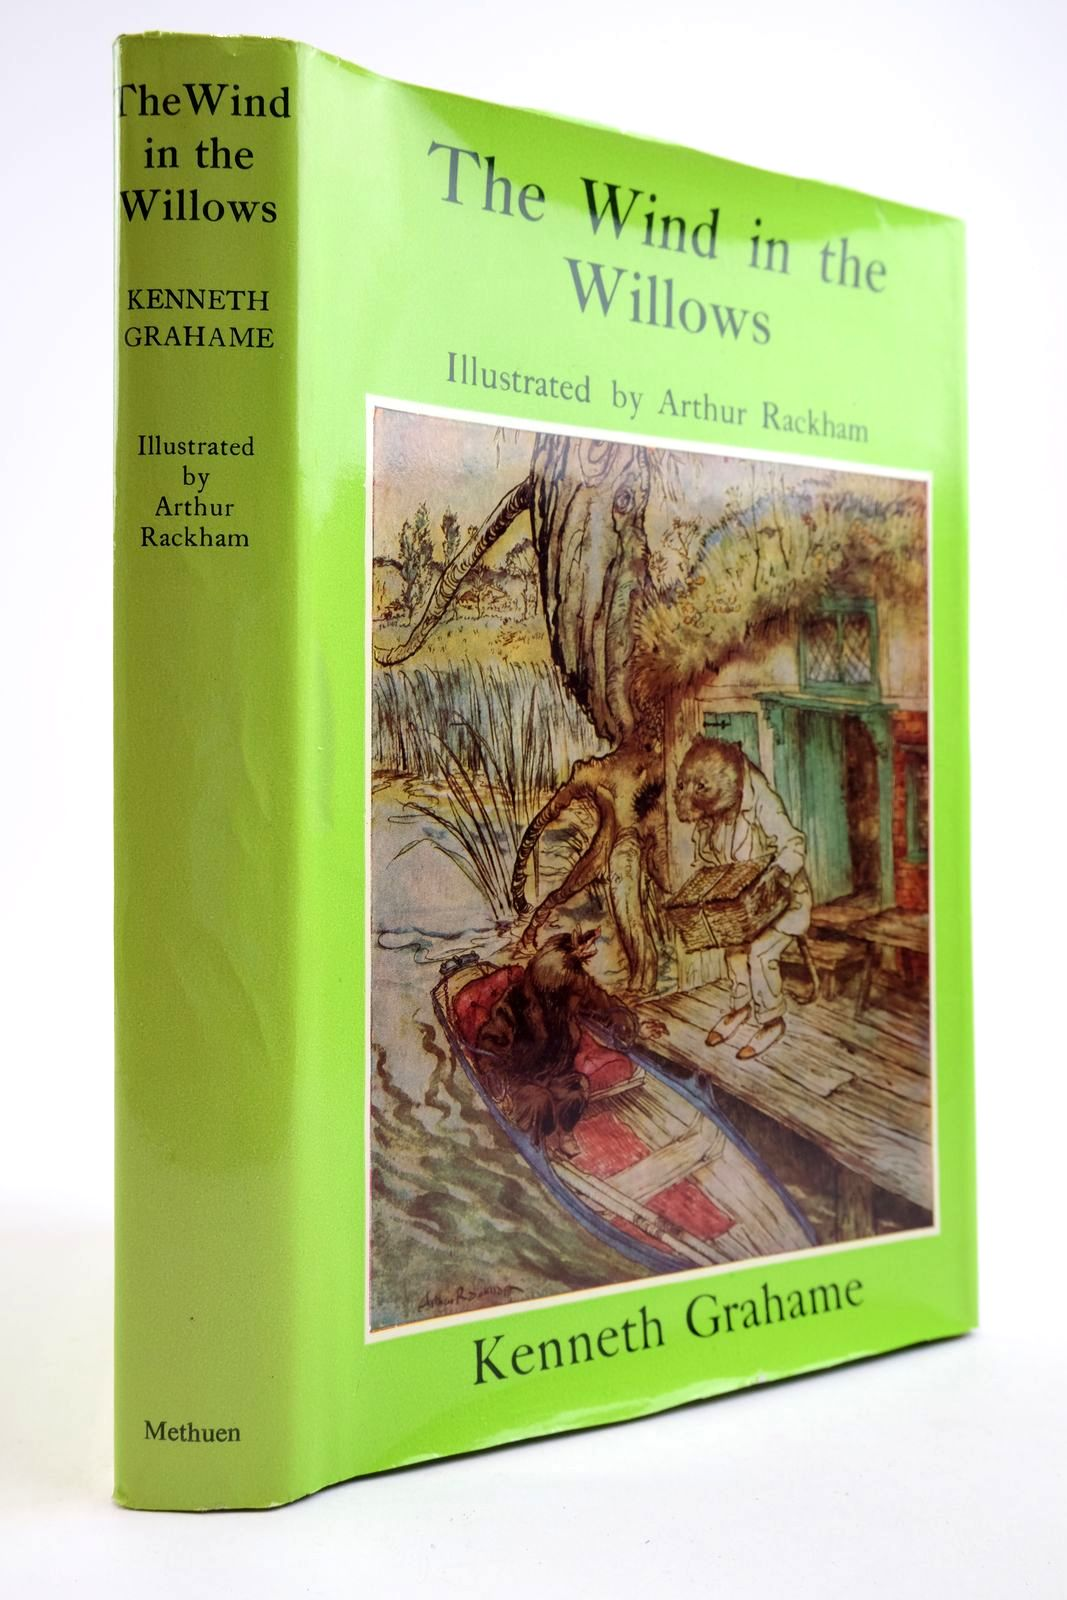 Photo of THE WIND IN THE WILLOWS written by Grahame, Kenneth illustrated by Rackham, Arthur published by Methuen Children's Books (STOCK CODE: 2133959)  for sale by Stella & Rose's Books